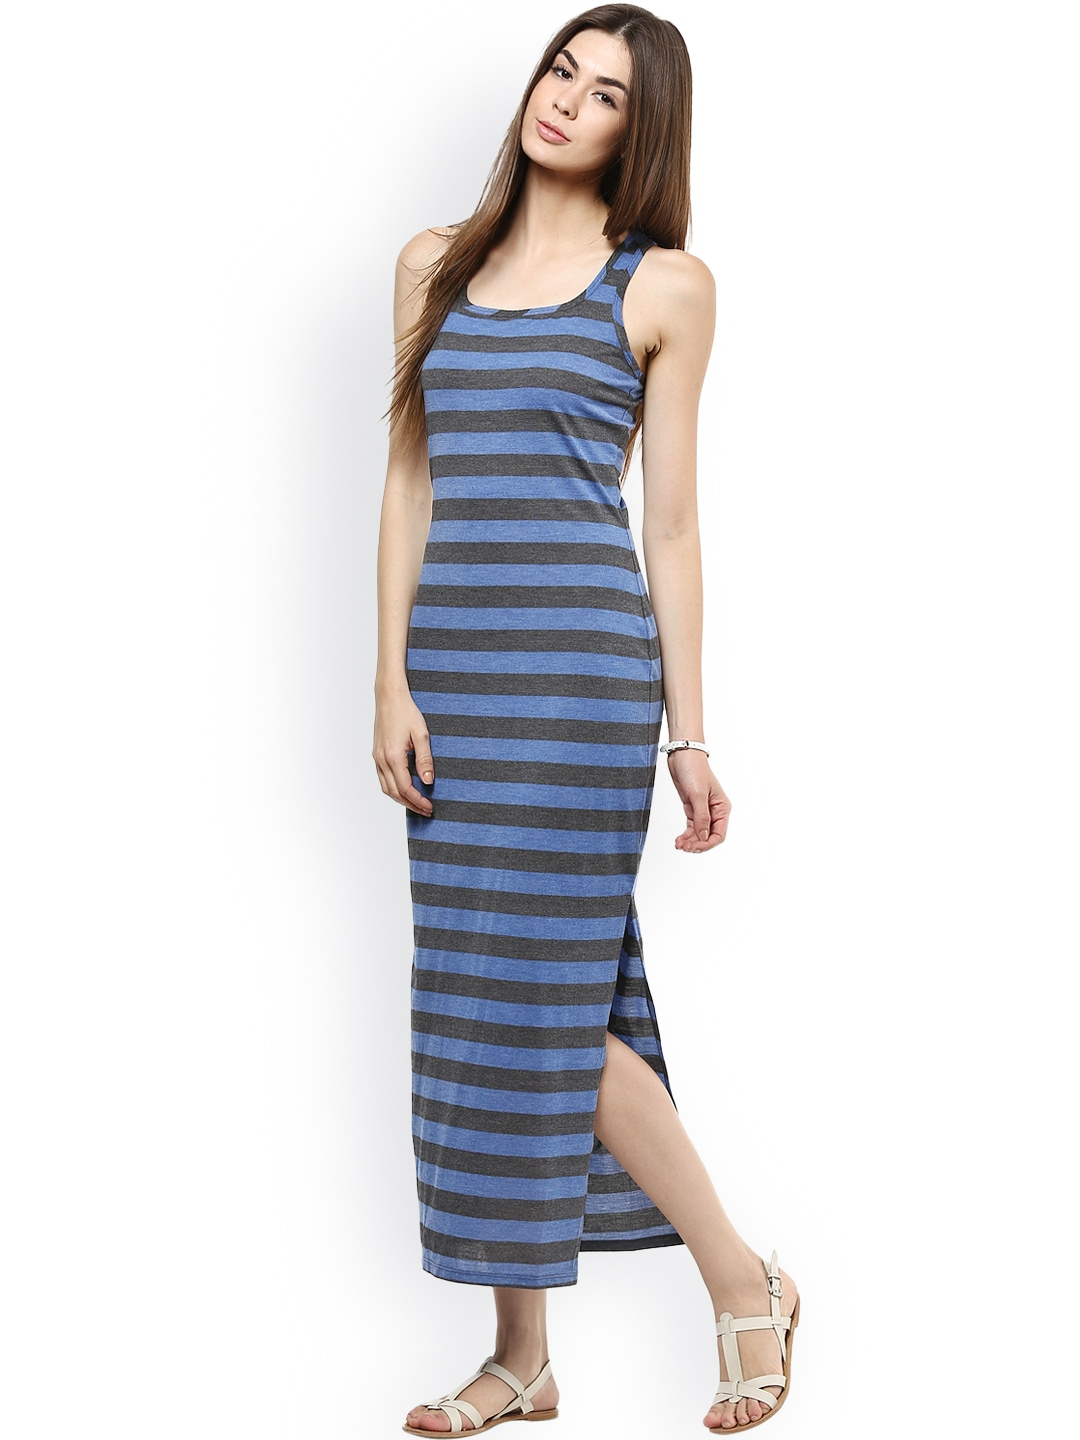 Buy Band Collar Asymmetric Stripe Pocket Maxi Dress online with cheap prices and discover fashion Maxi Dresses at private-dev.tk 00 $ USD $ USD € EUR £ GBP $ CAD $ AUD Black White Striped Round Neck Long Dress. US$ Floral Printed Round Neck Fake Two-Piece Maxi Dress Band Collar Asymmetric Stripe Pocket Maxi Dress.